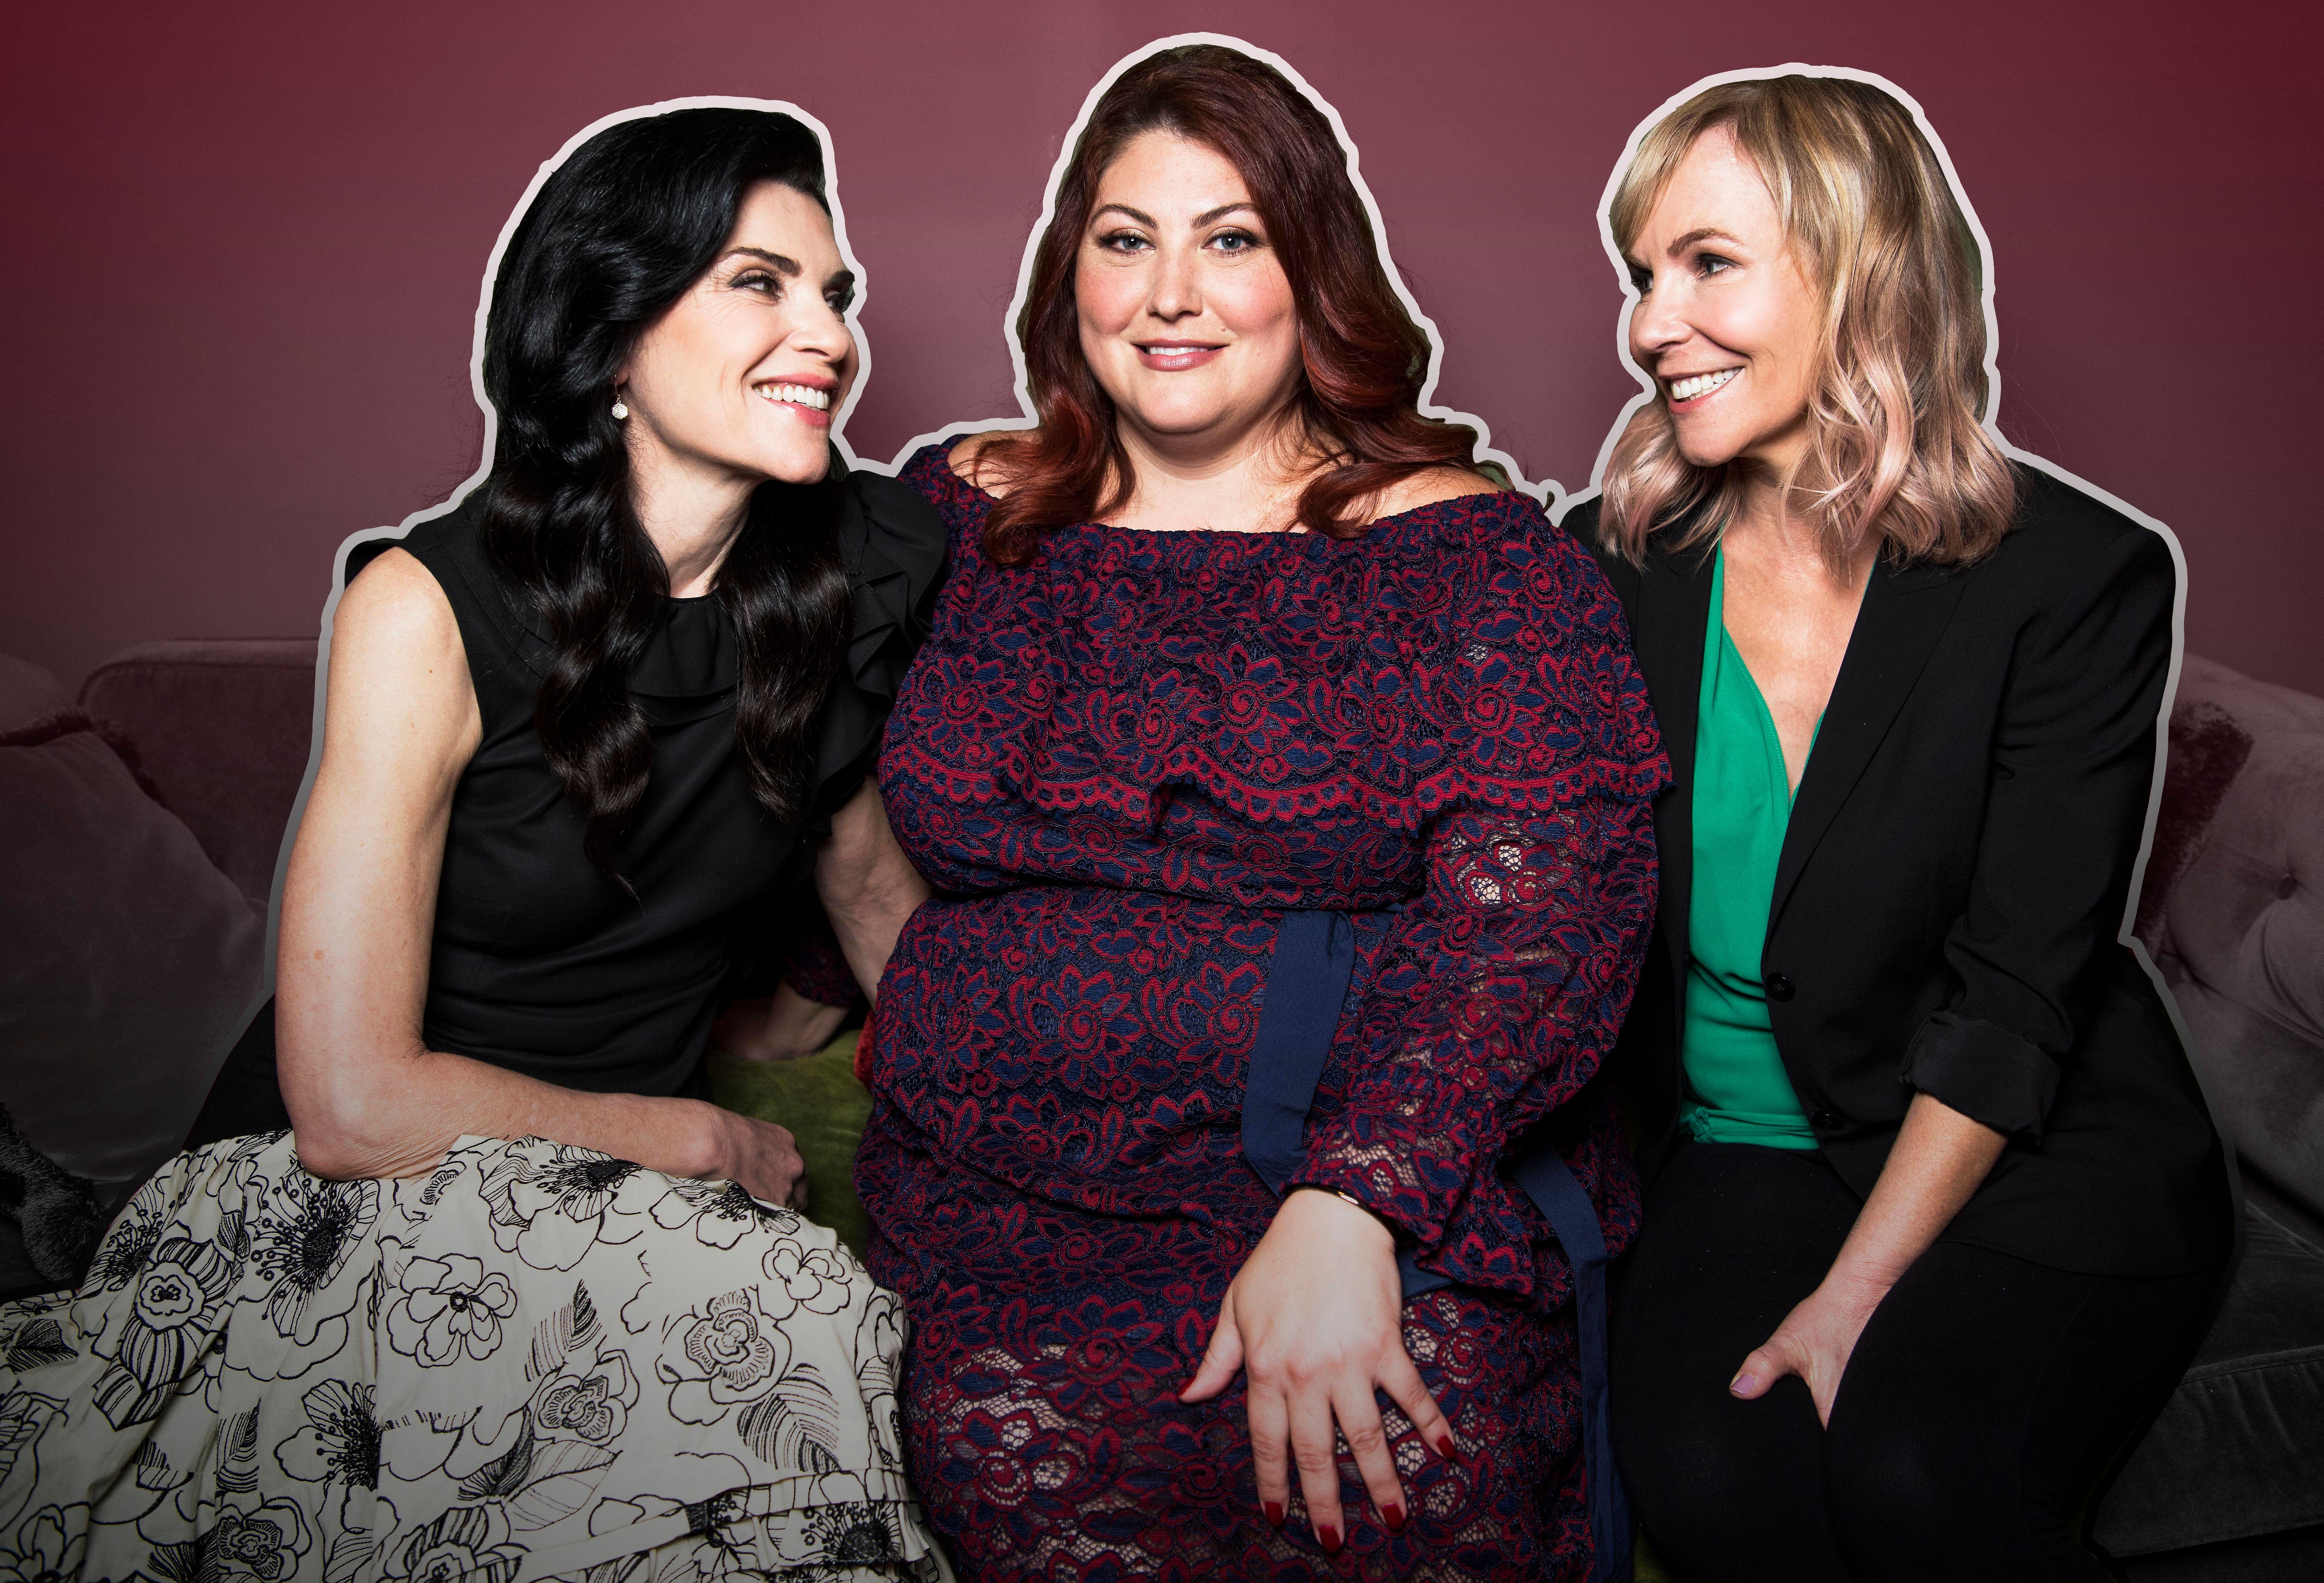 """Dietland"" actresses Julianna Margulies and Joy Nash with director Marti Noxon."